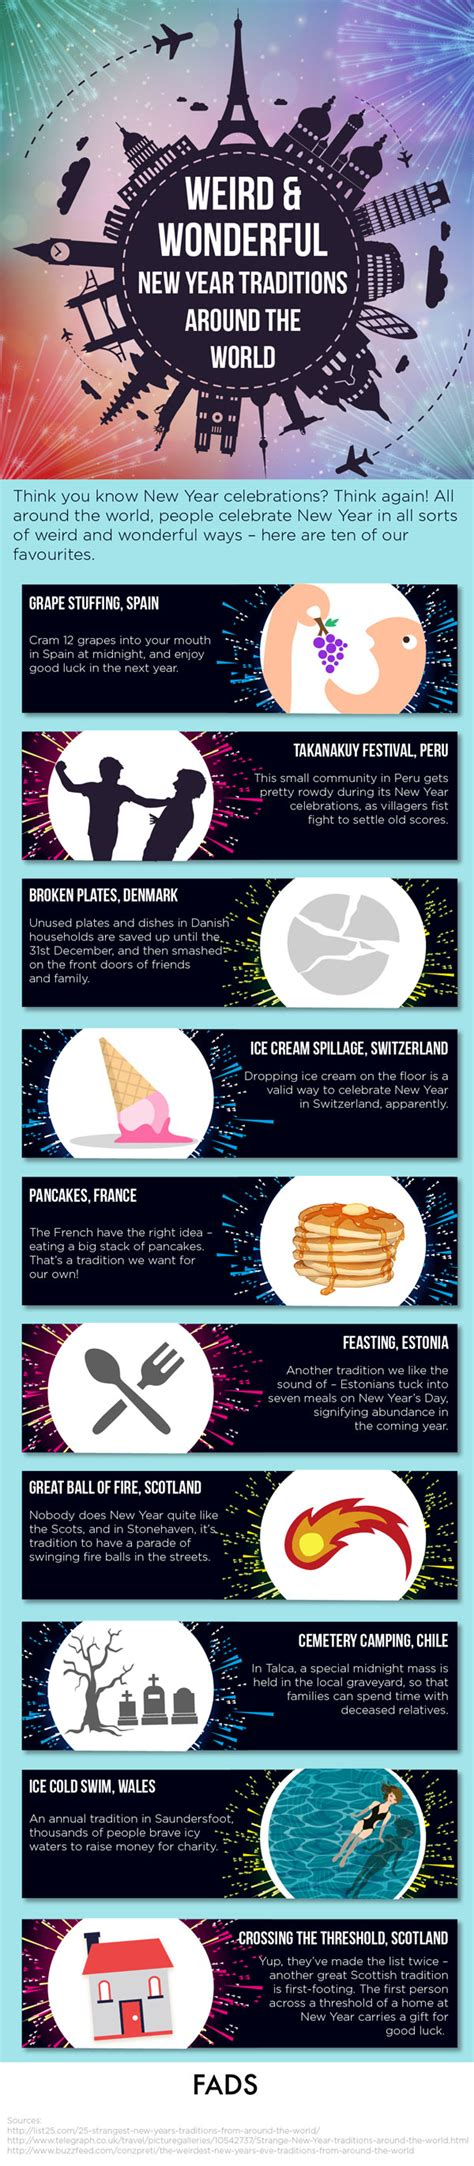 new year year traditions infographic and wonderful new year traditions